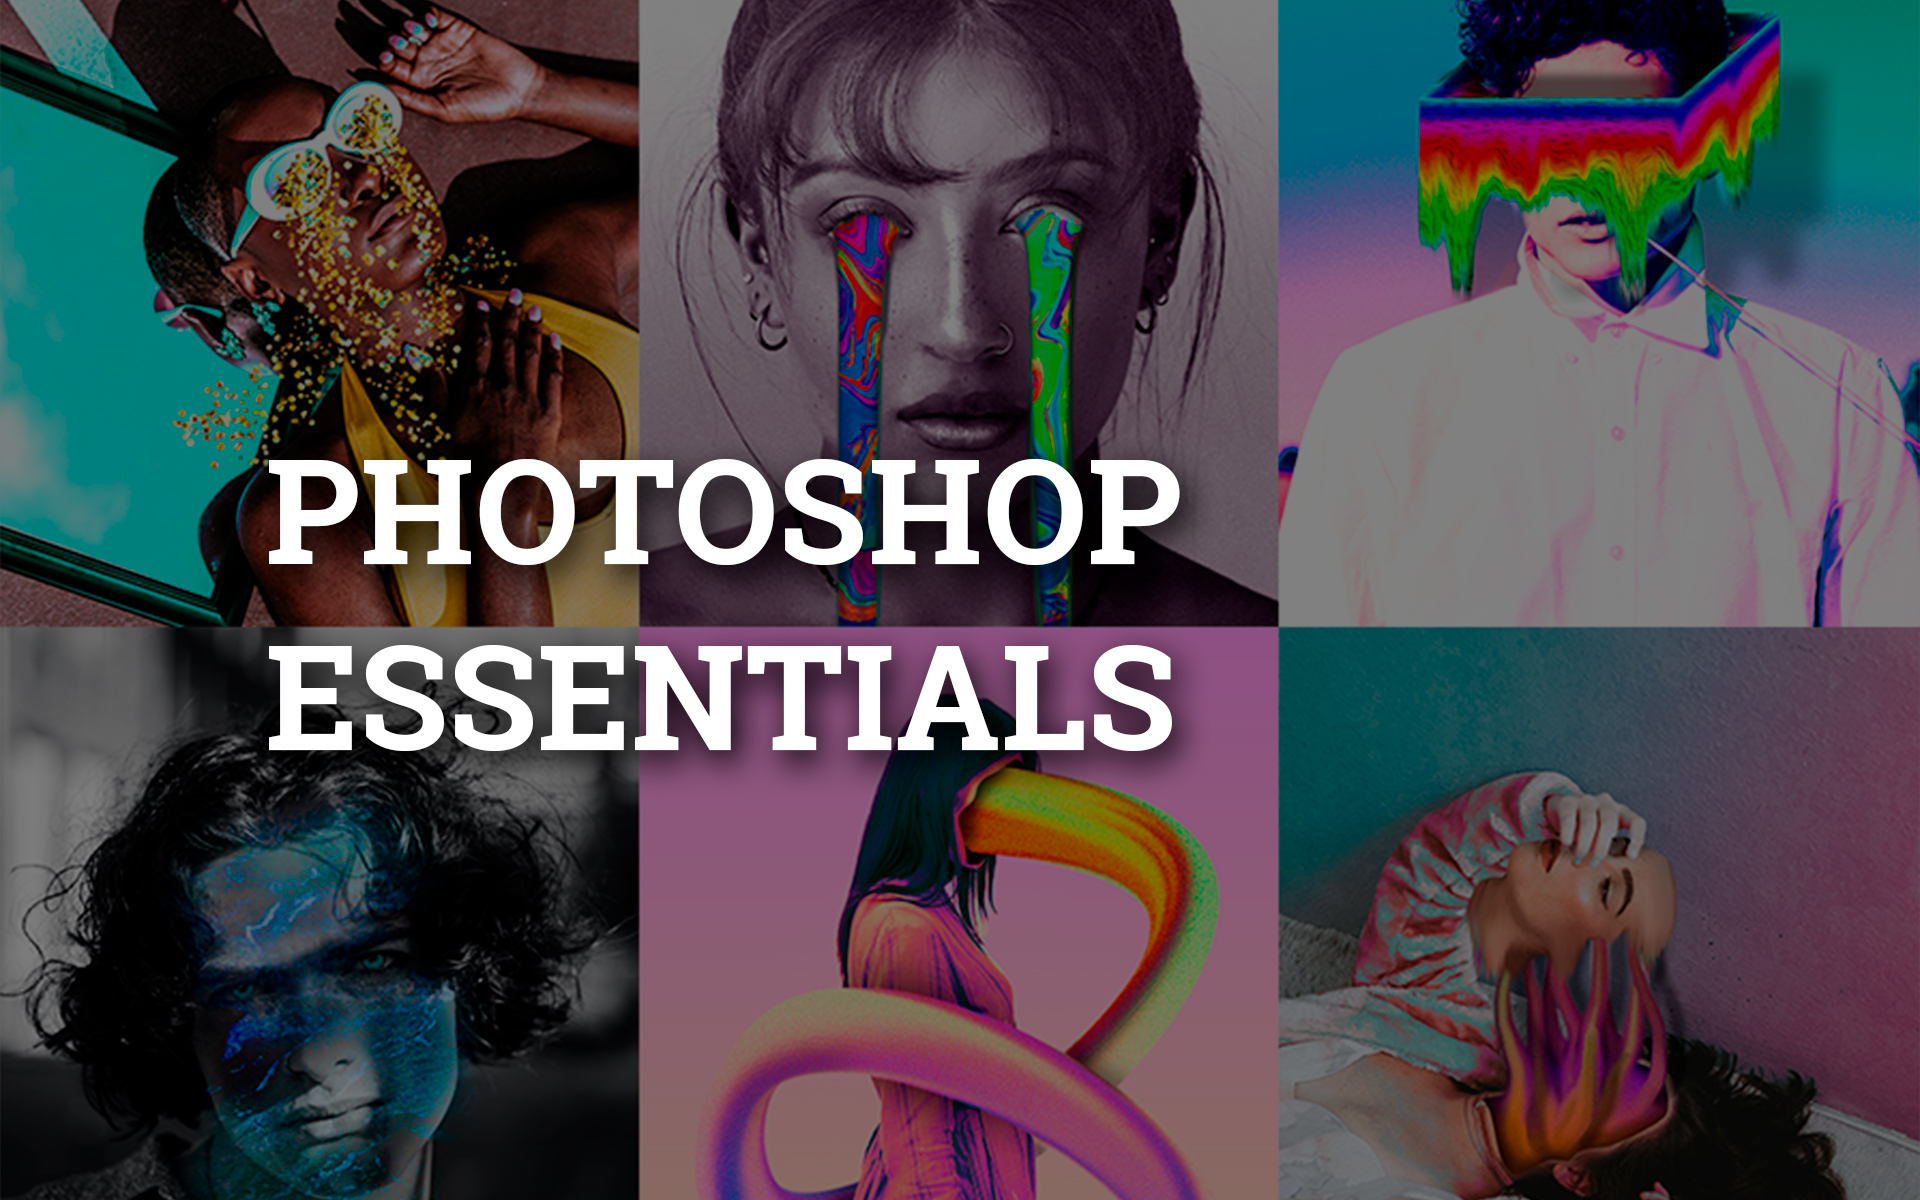 Learn Photoshop Essentials and create cool projects for Free